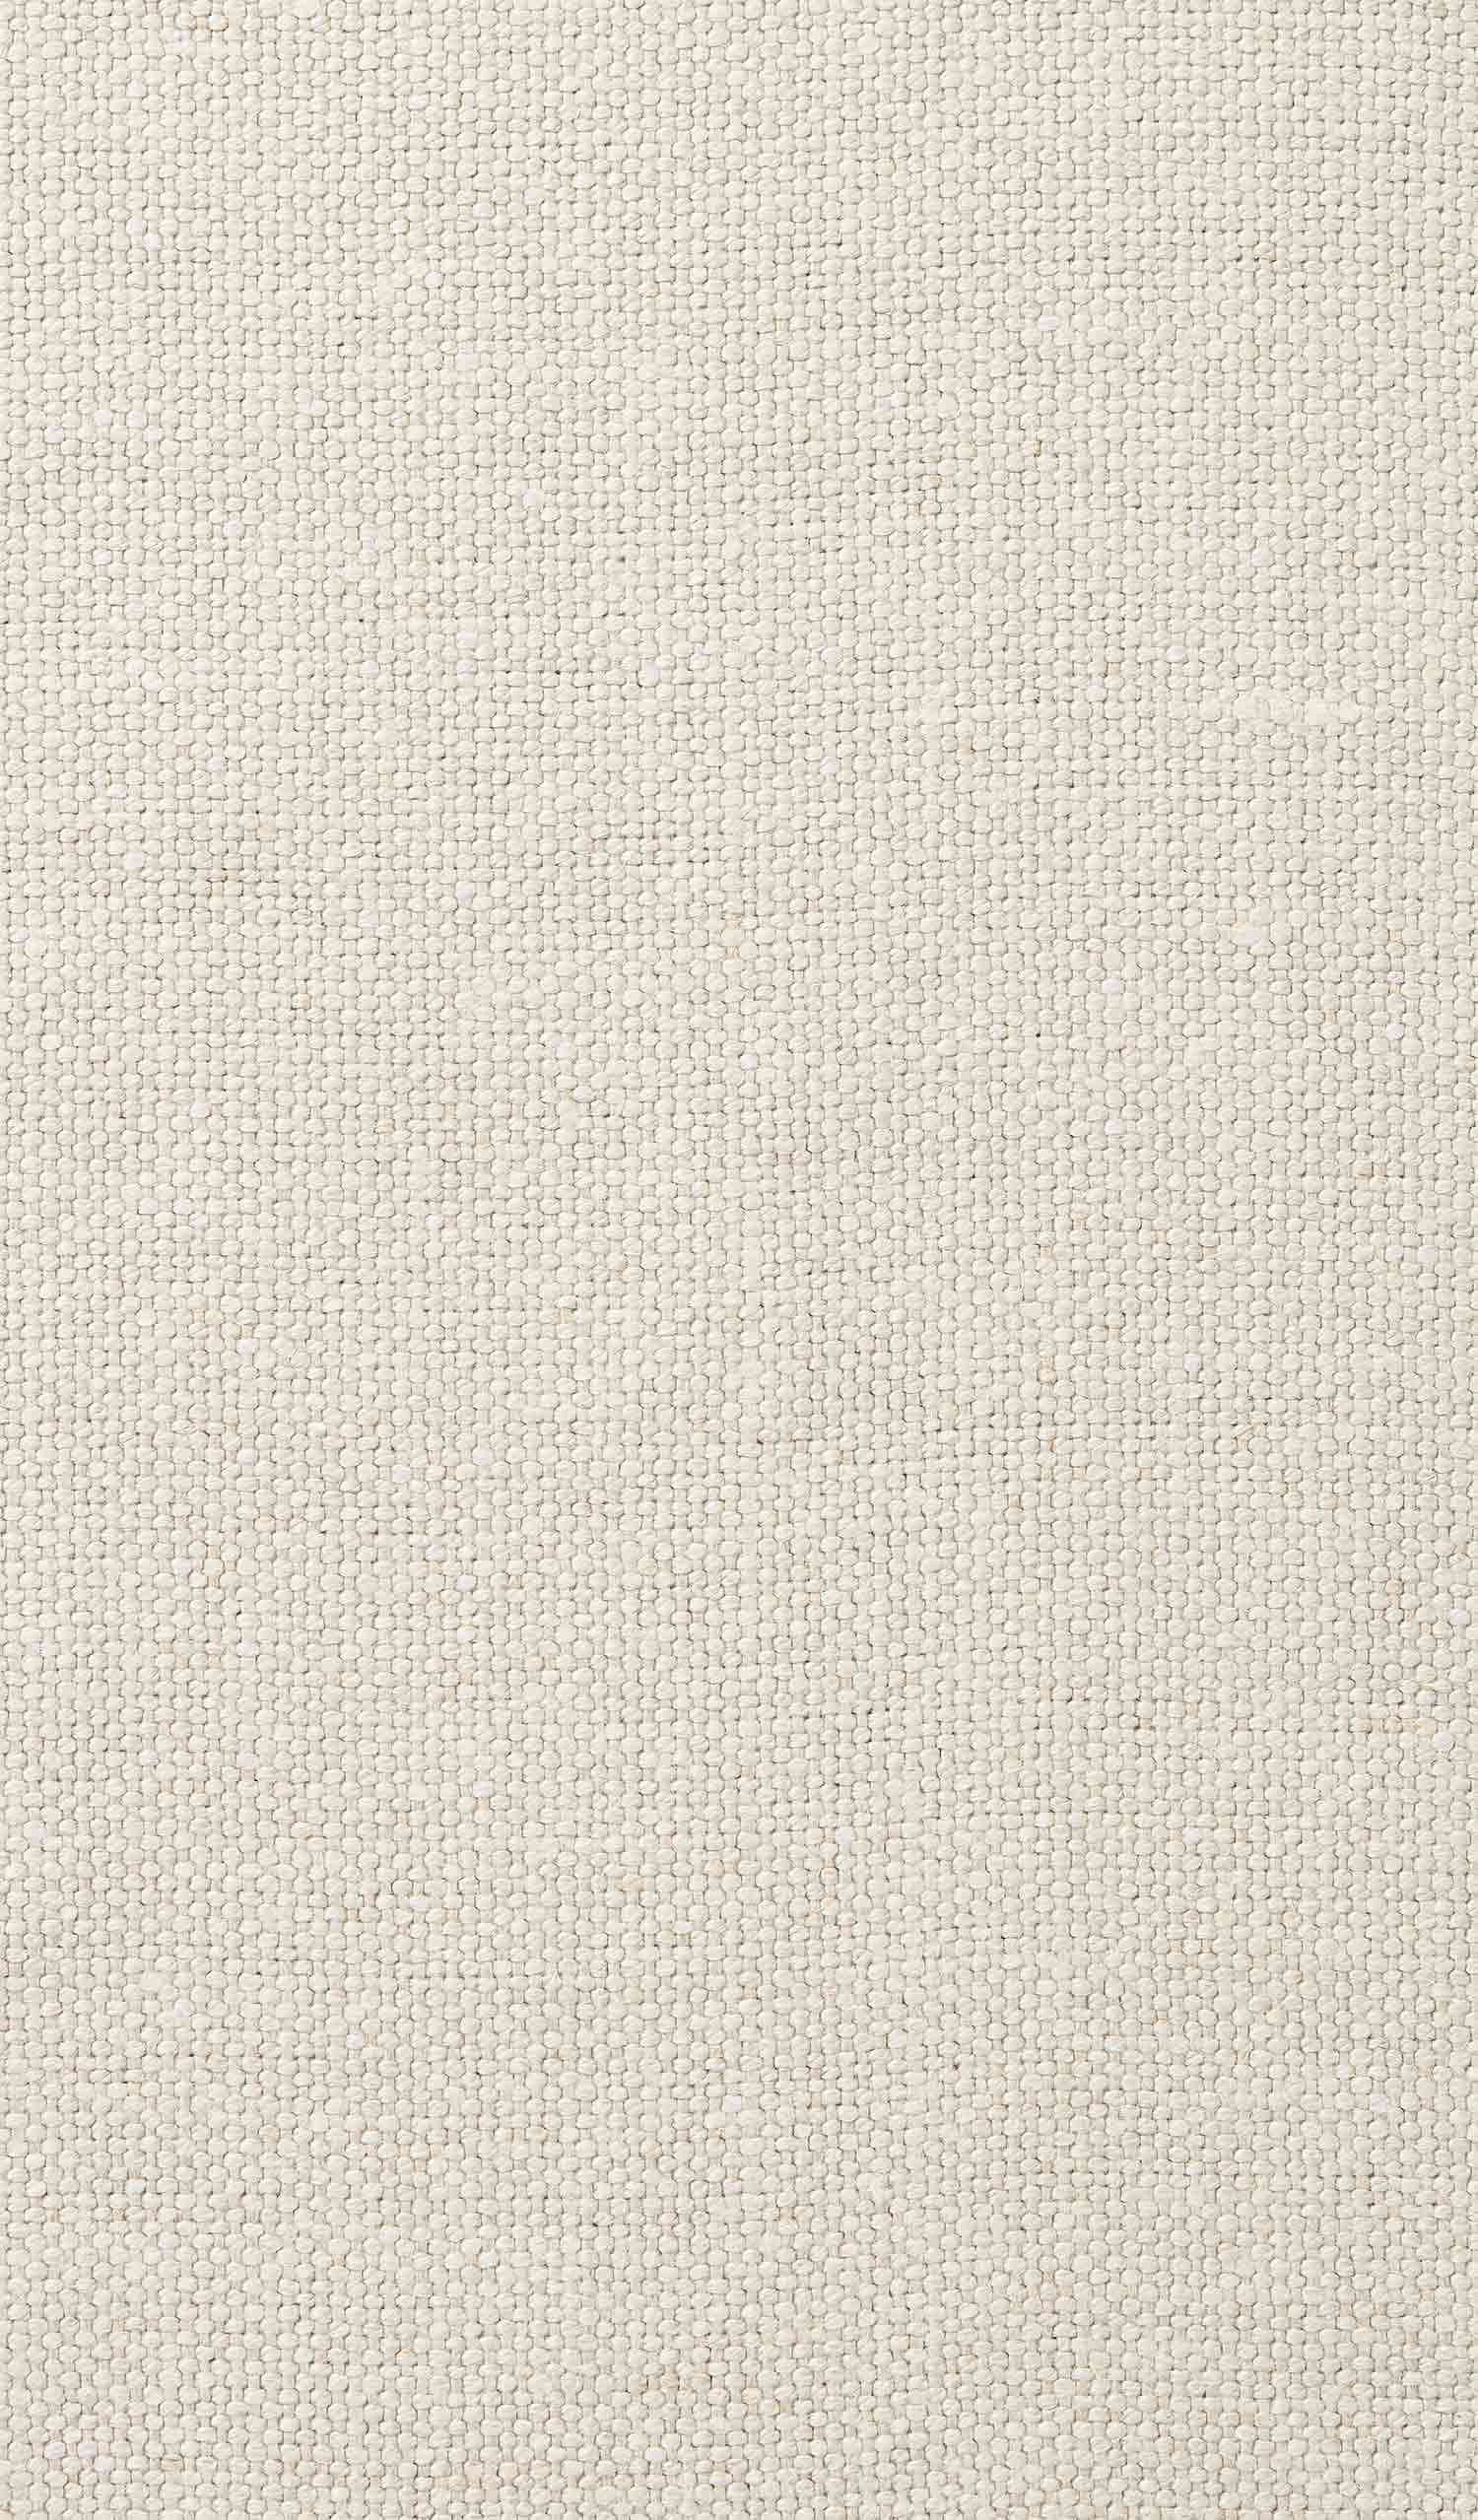 swatch of linen rustic natural